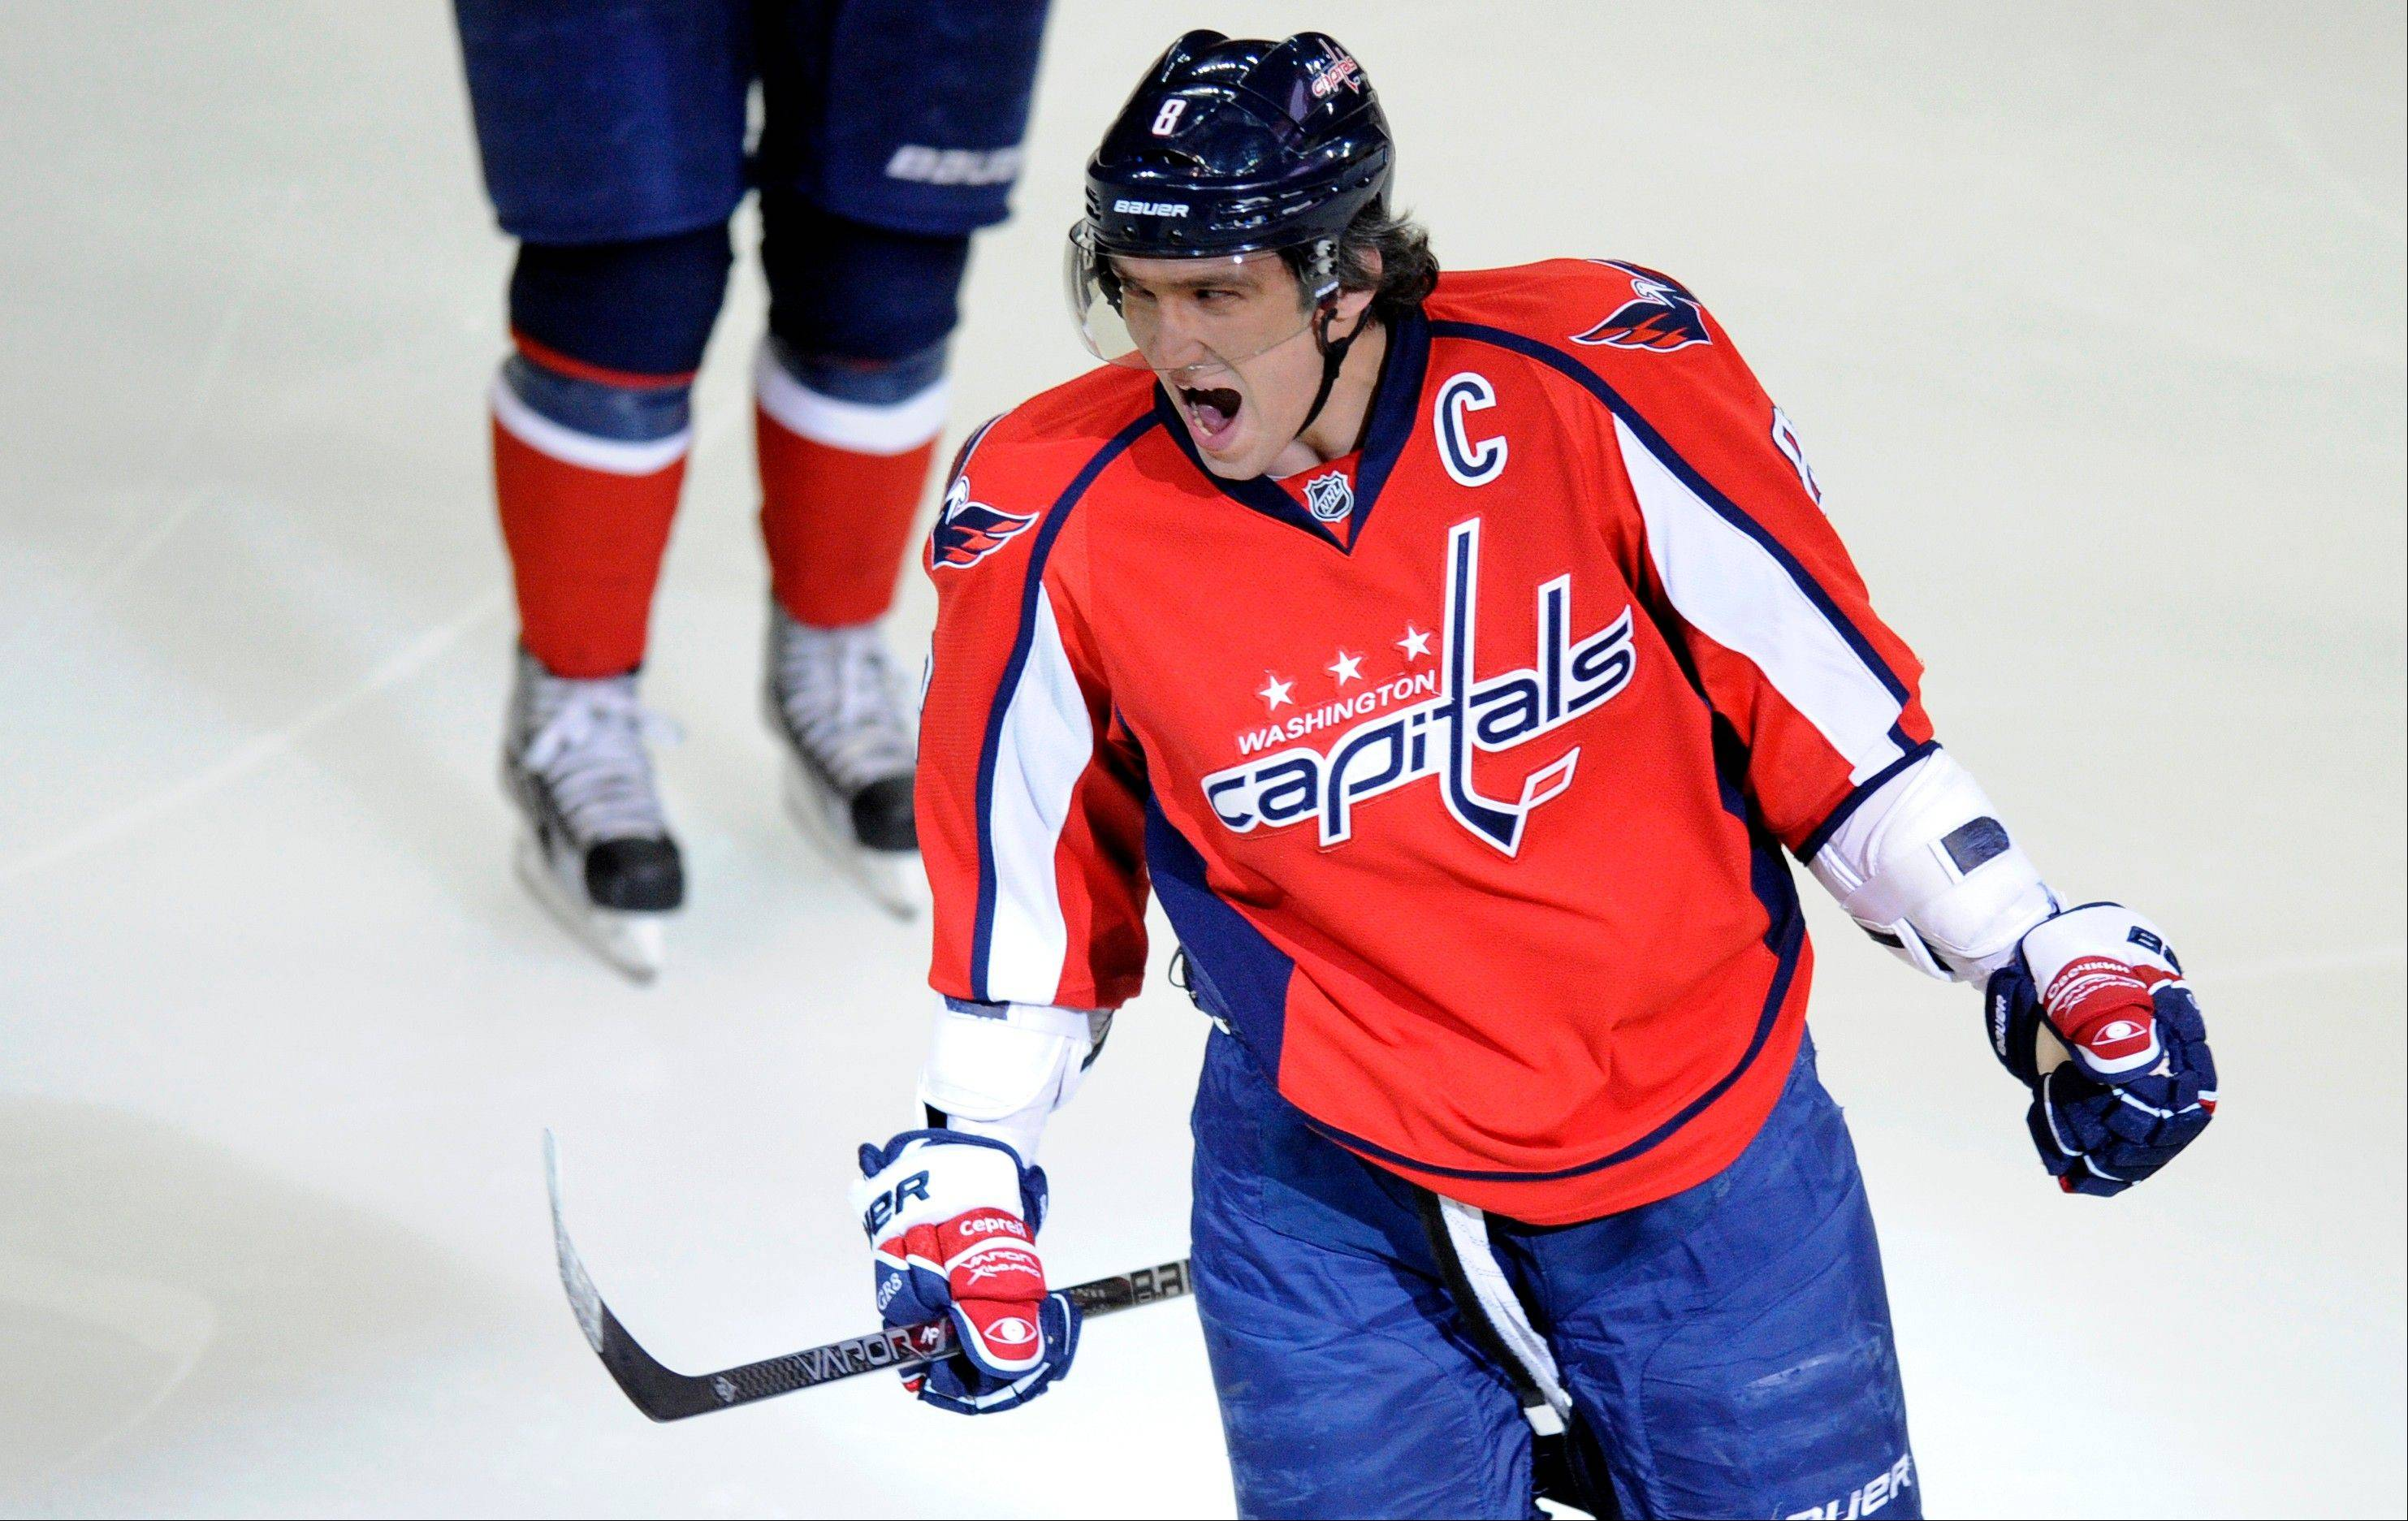 Washington Capitals winger Alex Ovechkin has won the NHL's Hart Trophy, given to the league's most valuable player, three times.